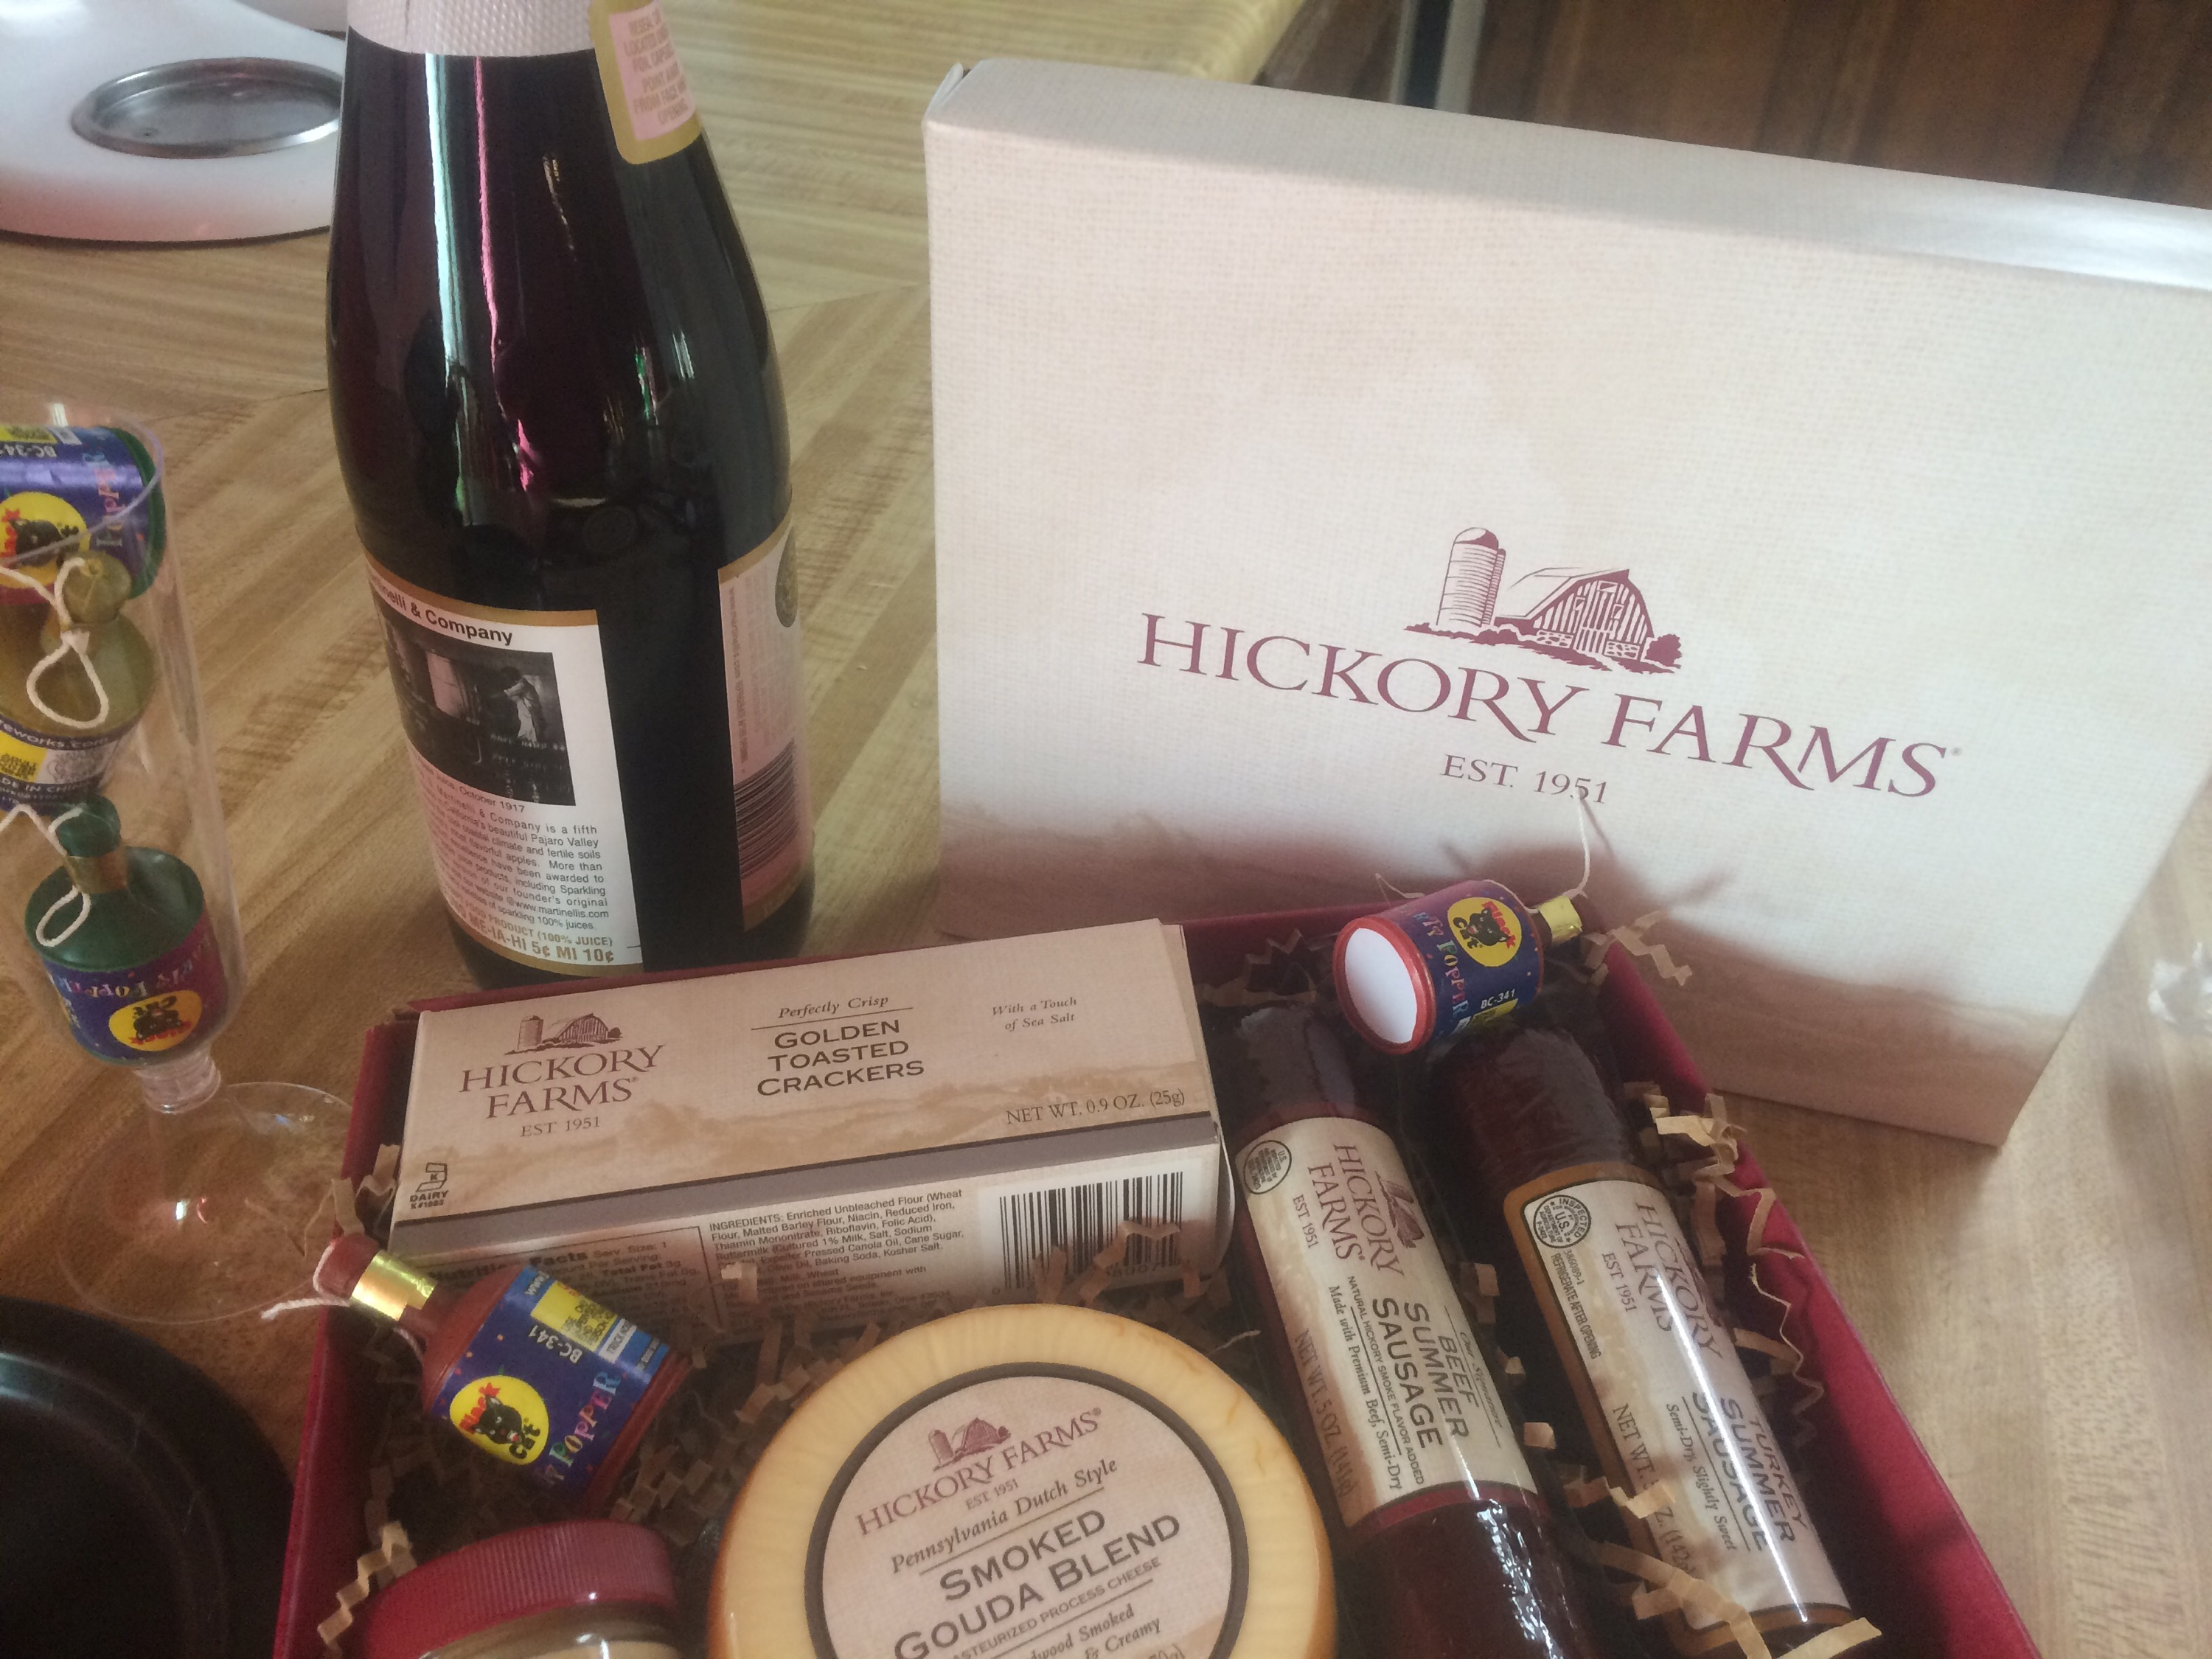 2014 Holiday Gift Guide: Be Classy This NYE, Give a Hostess Gift From Hickory Farms + Giveaway